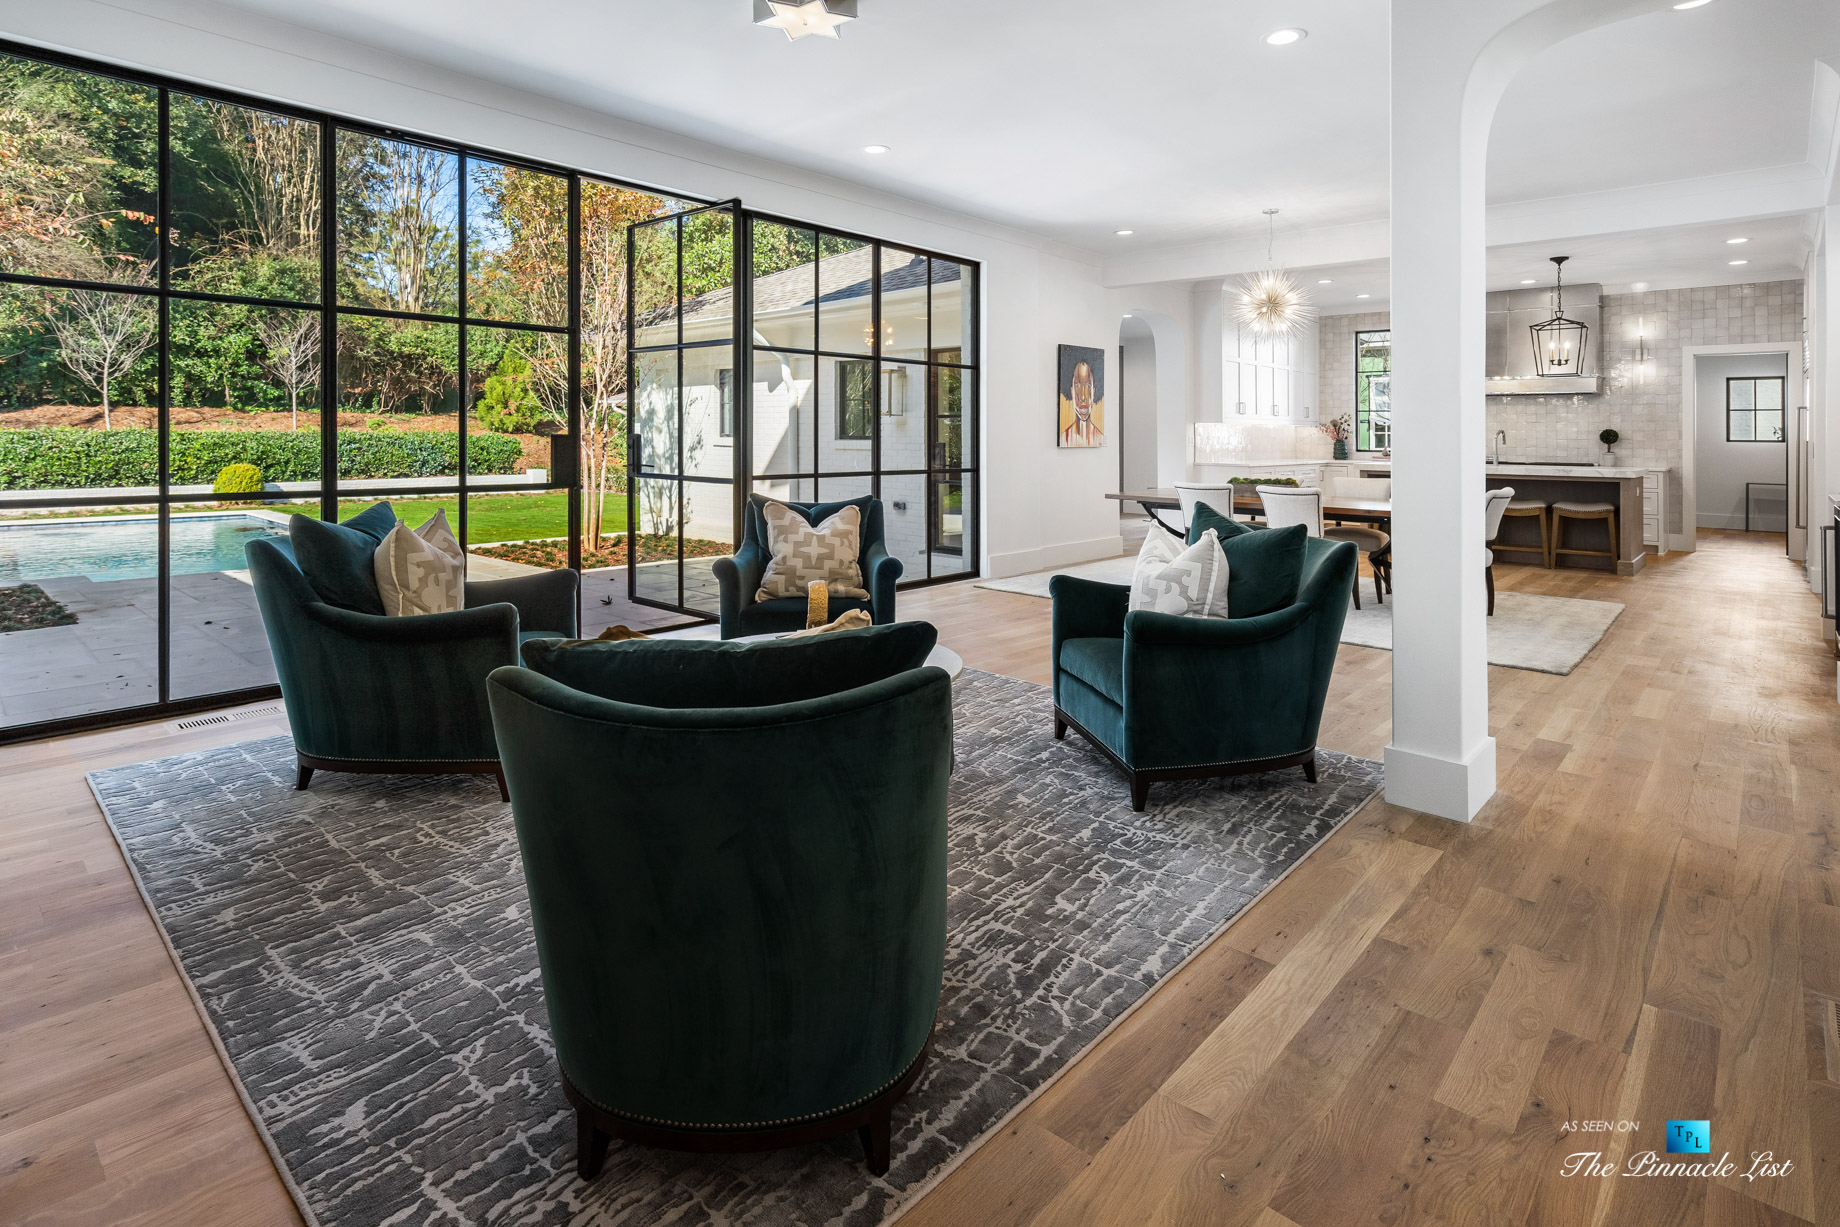 447 Valley Rd NW, Atlanta, GA, USA - Living Area and Glass Door to Outside Pool - Luxury Real Estate - Tuxedo Park Home